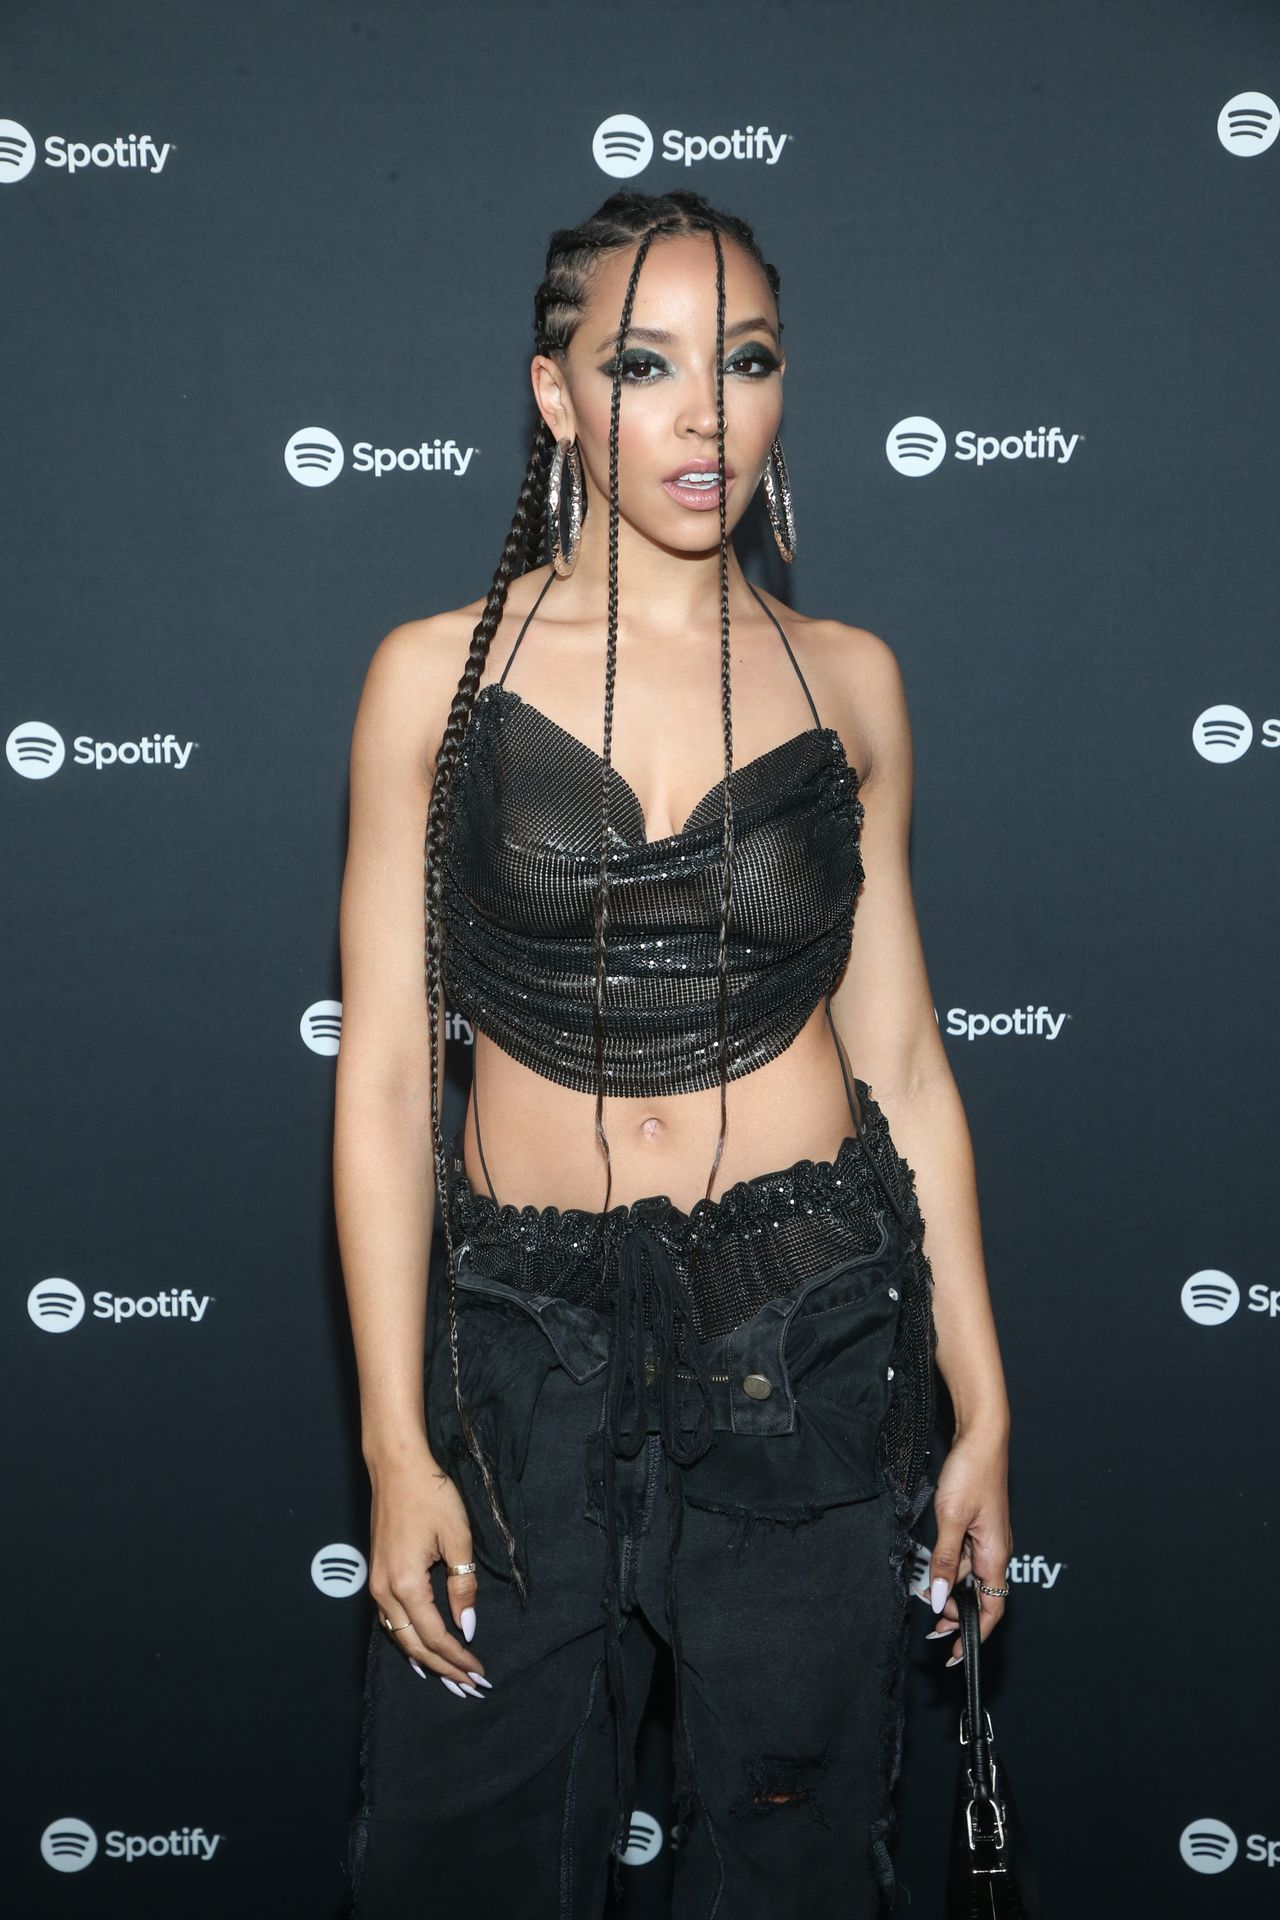 Tinashe Flaunts Her Tits At The Spotify Best New Artist Party 0044